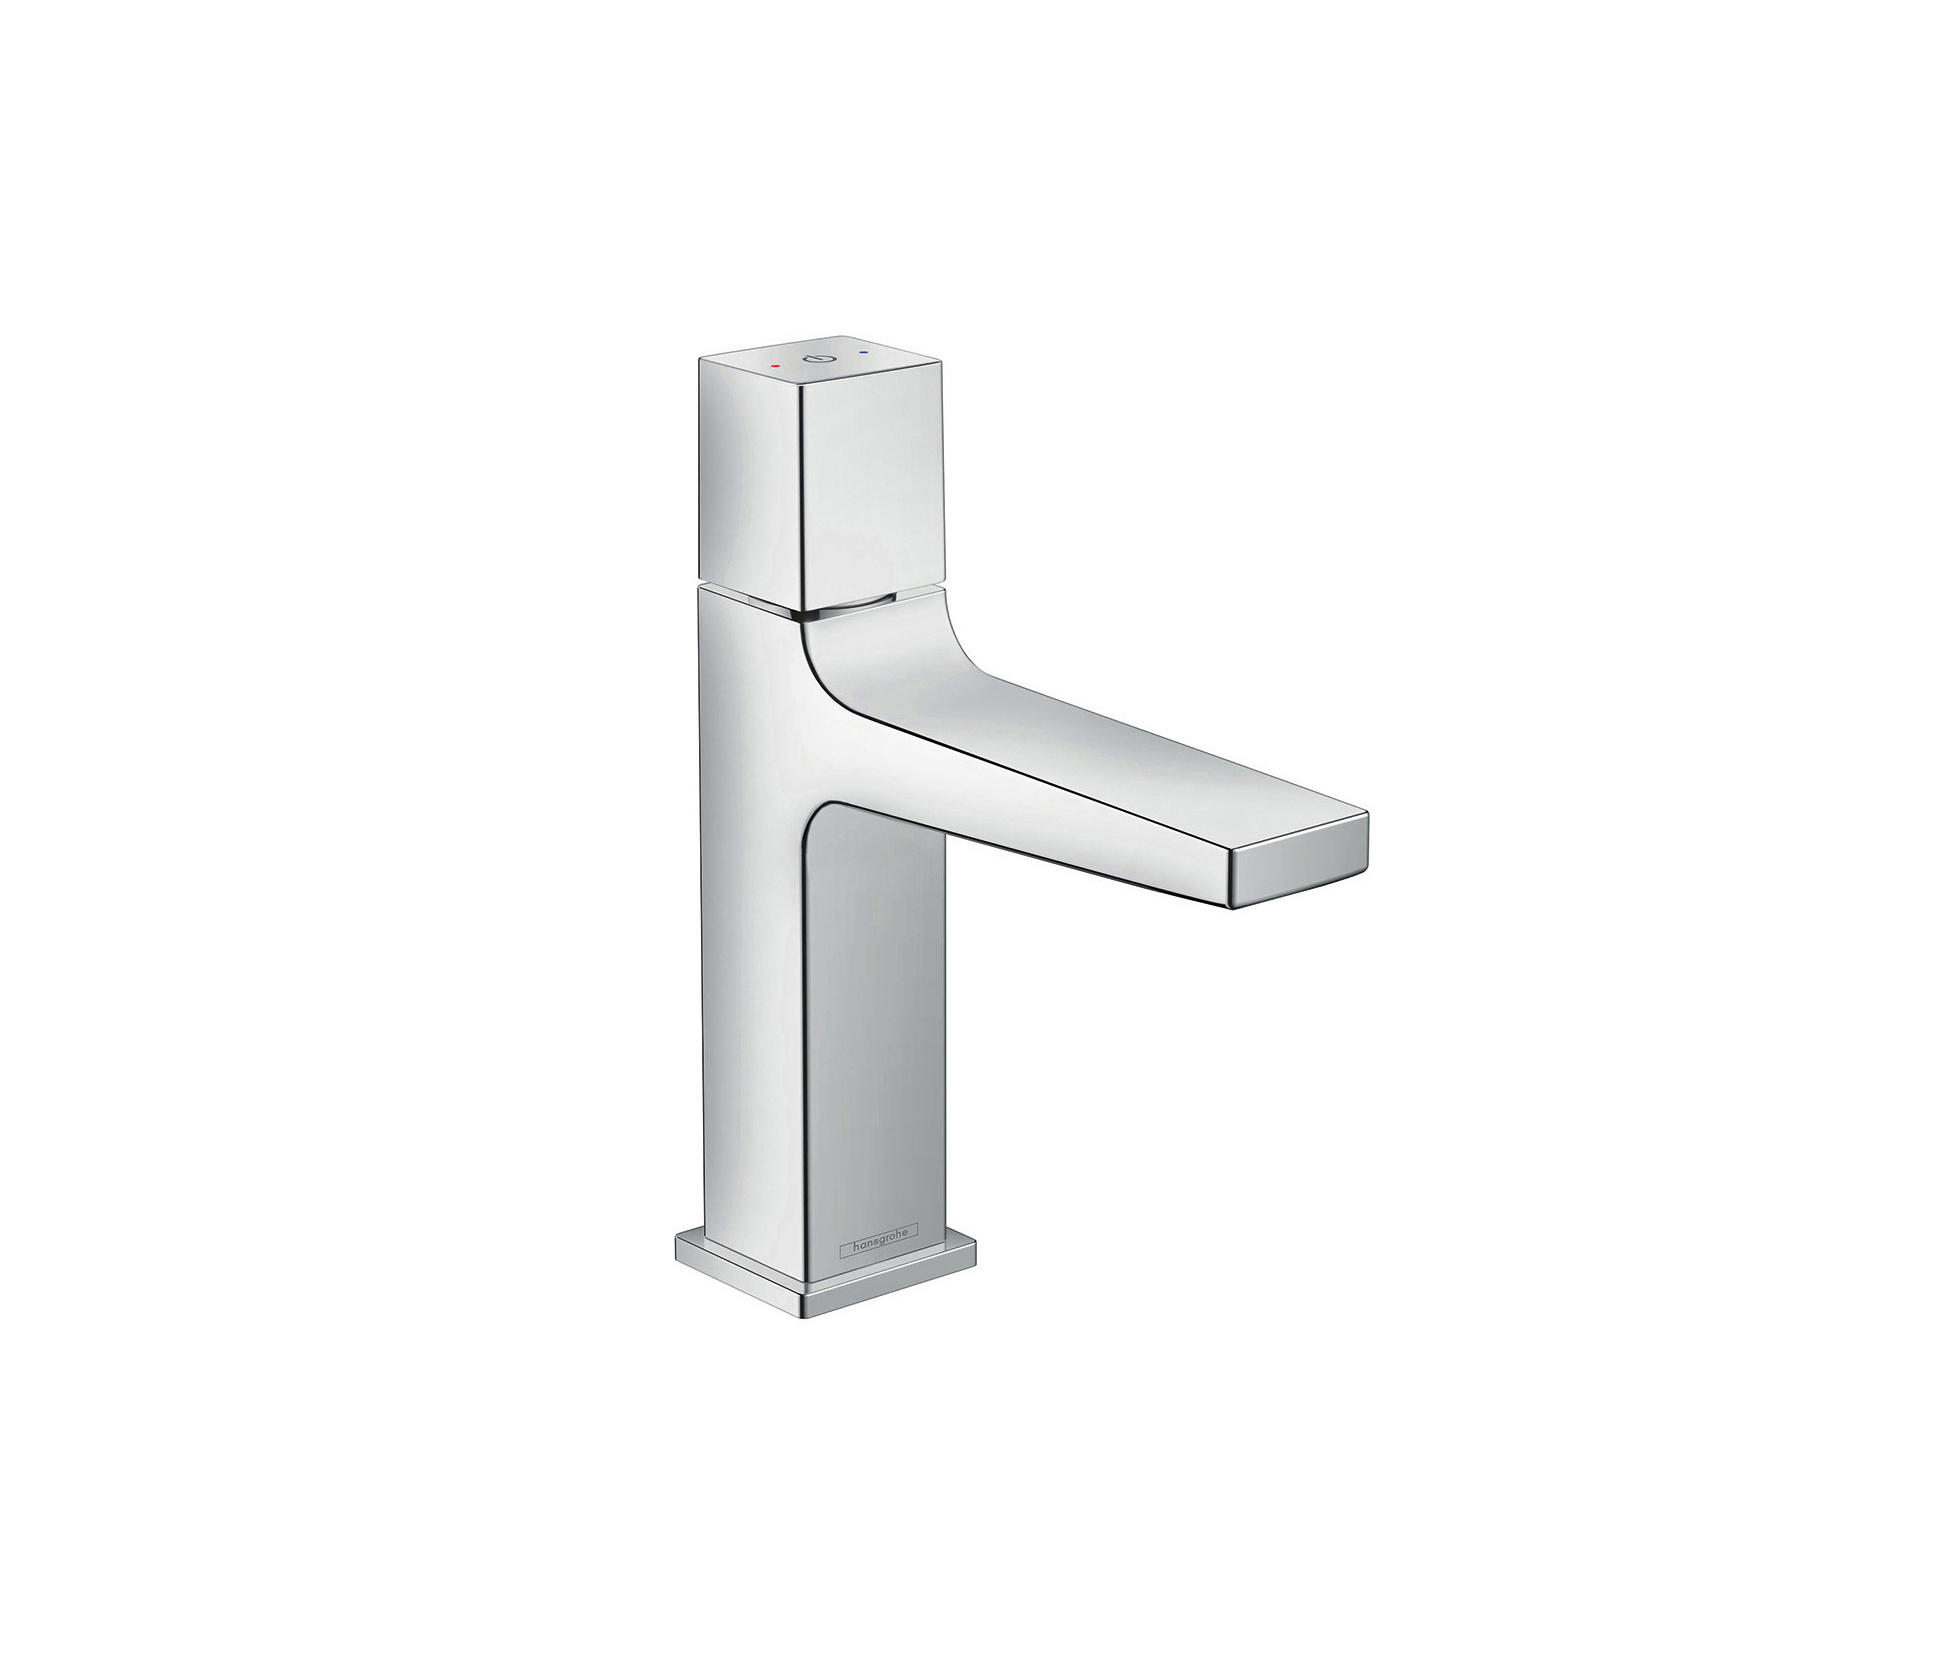 hansgrohe metropol select basin mixer 110 with push open waste set wash basin taps from. Black Bedroom Furniture Sets. Home Design Ideas